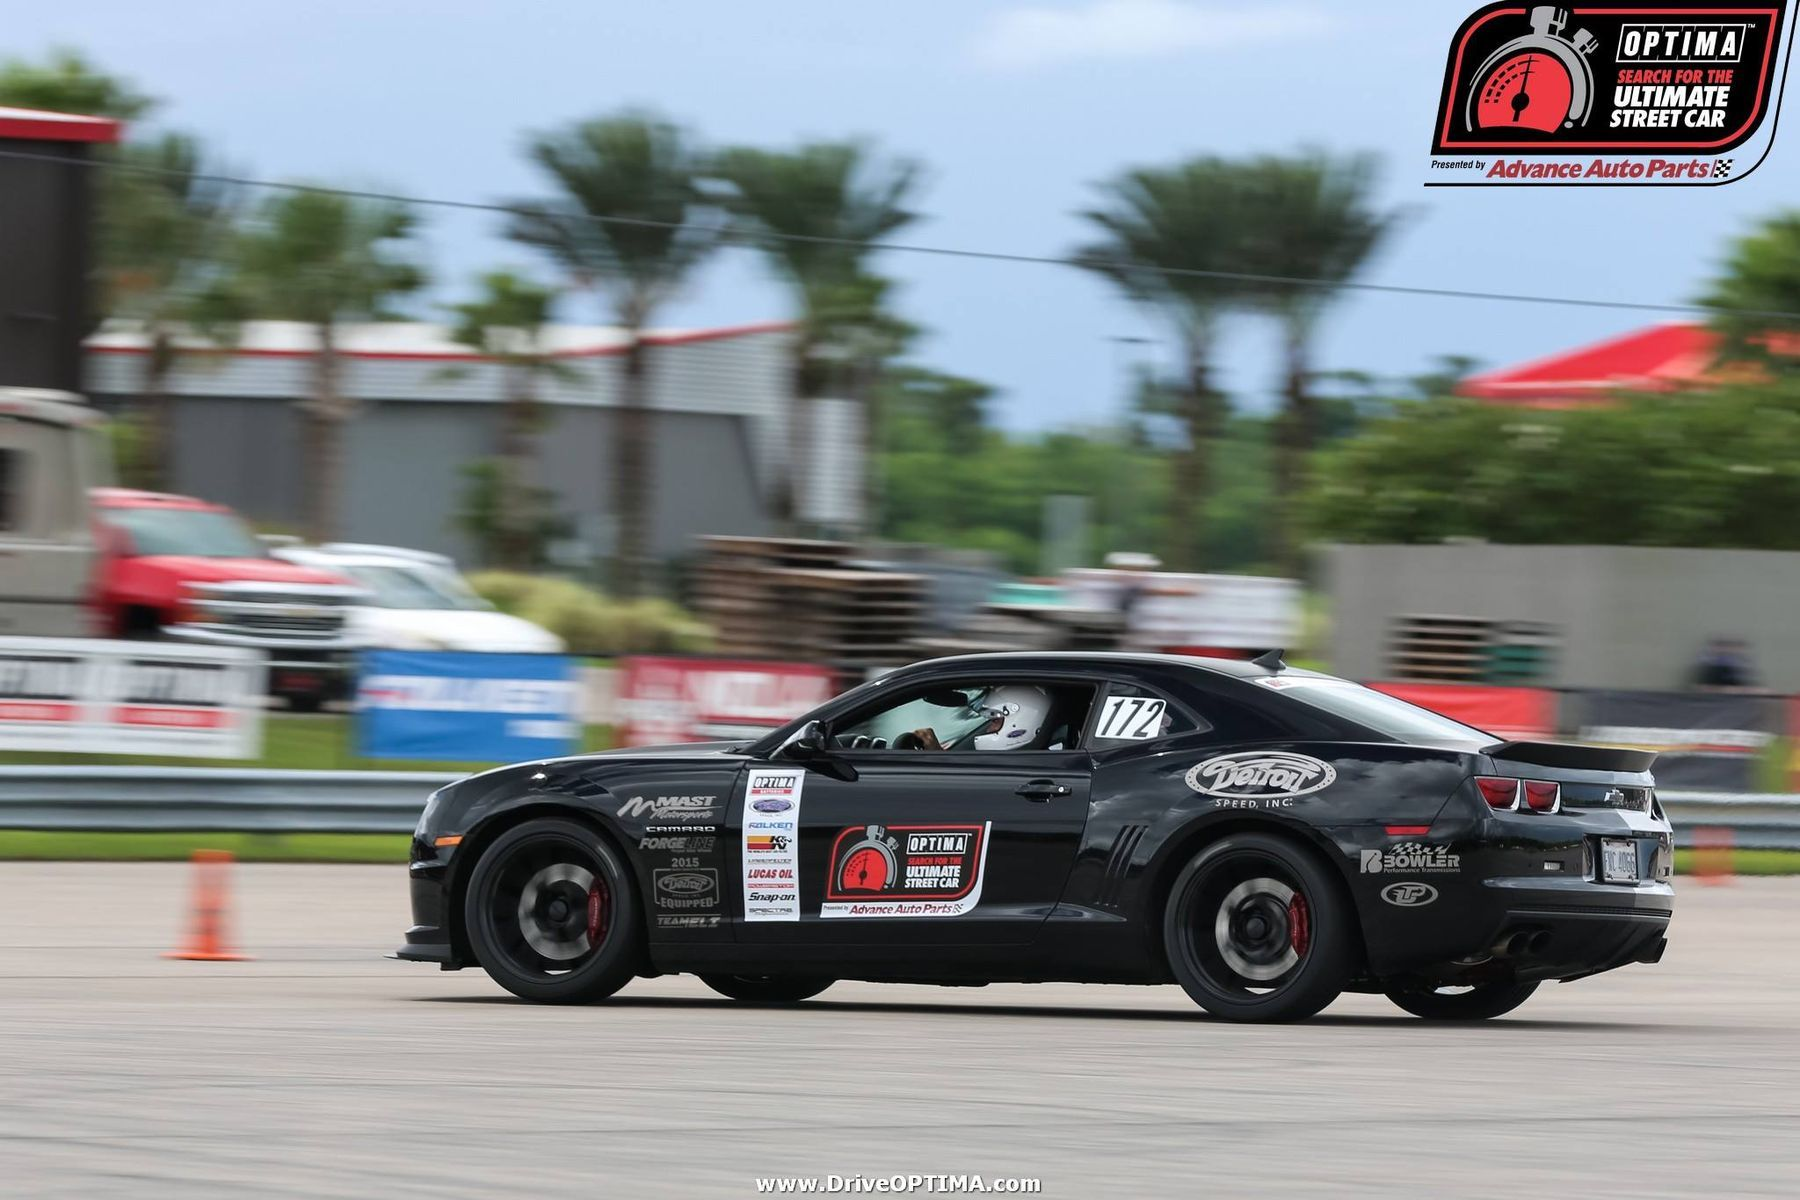 2016 Chevrolet Camaro | Bryan Johnson Wins USCA GT Class at NOLA Motorsports Park with Camaro 1LE on Forgeline One Piece Forged Monoblock GA1R Open Lug Wheels